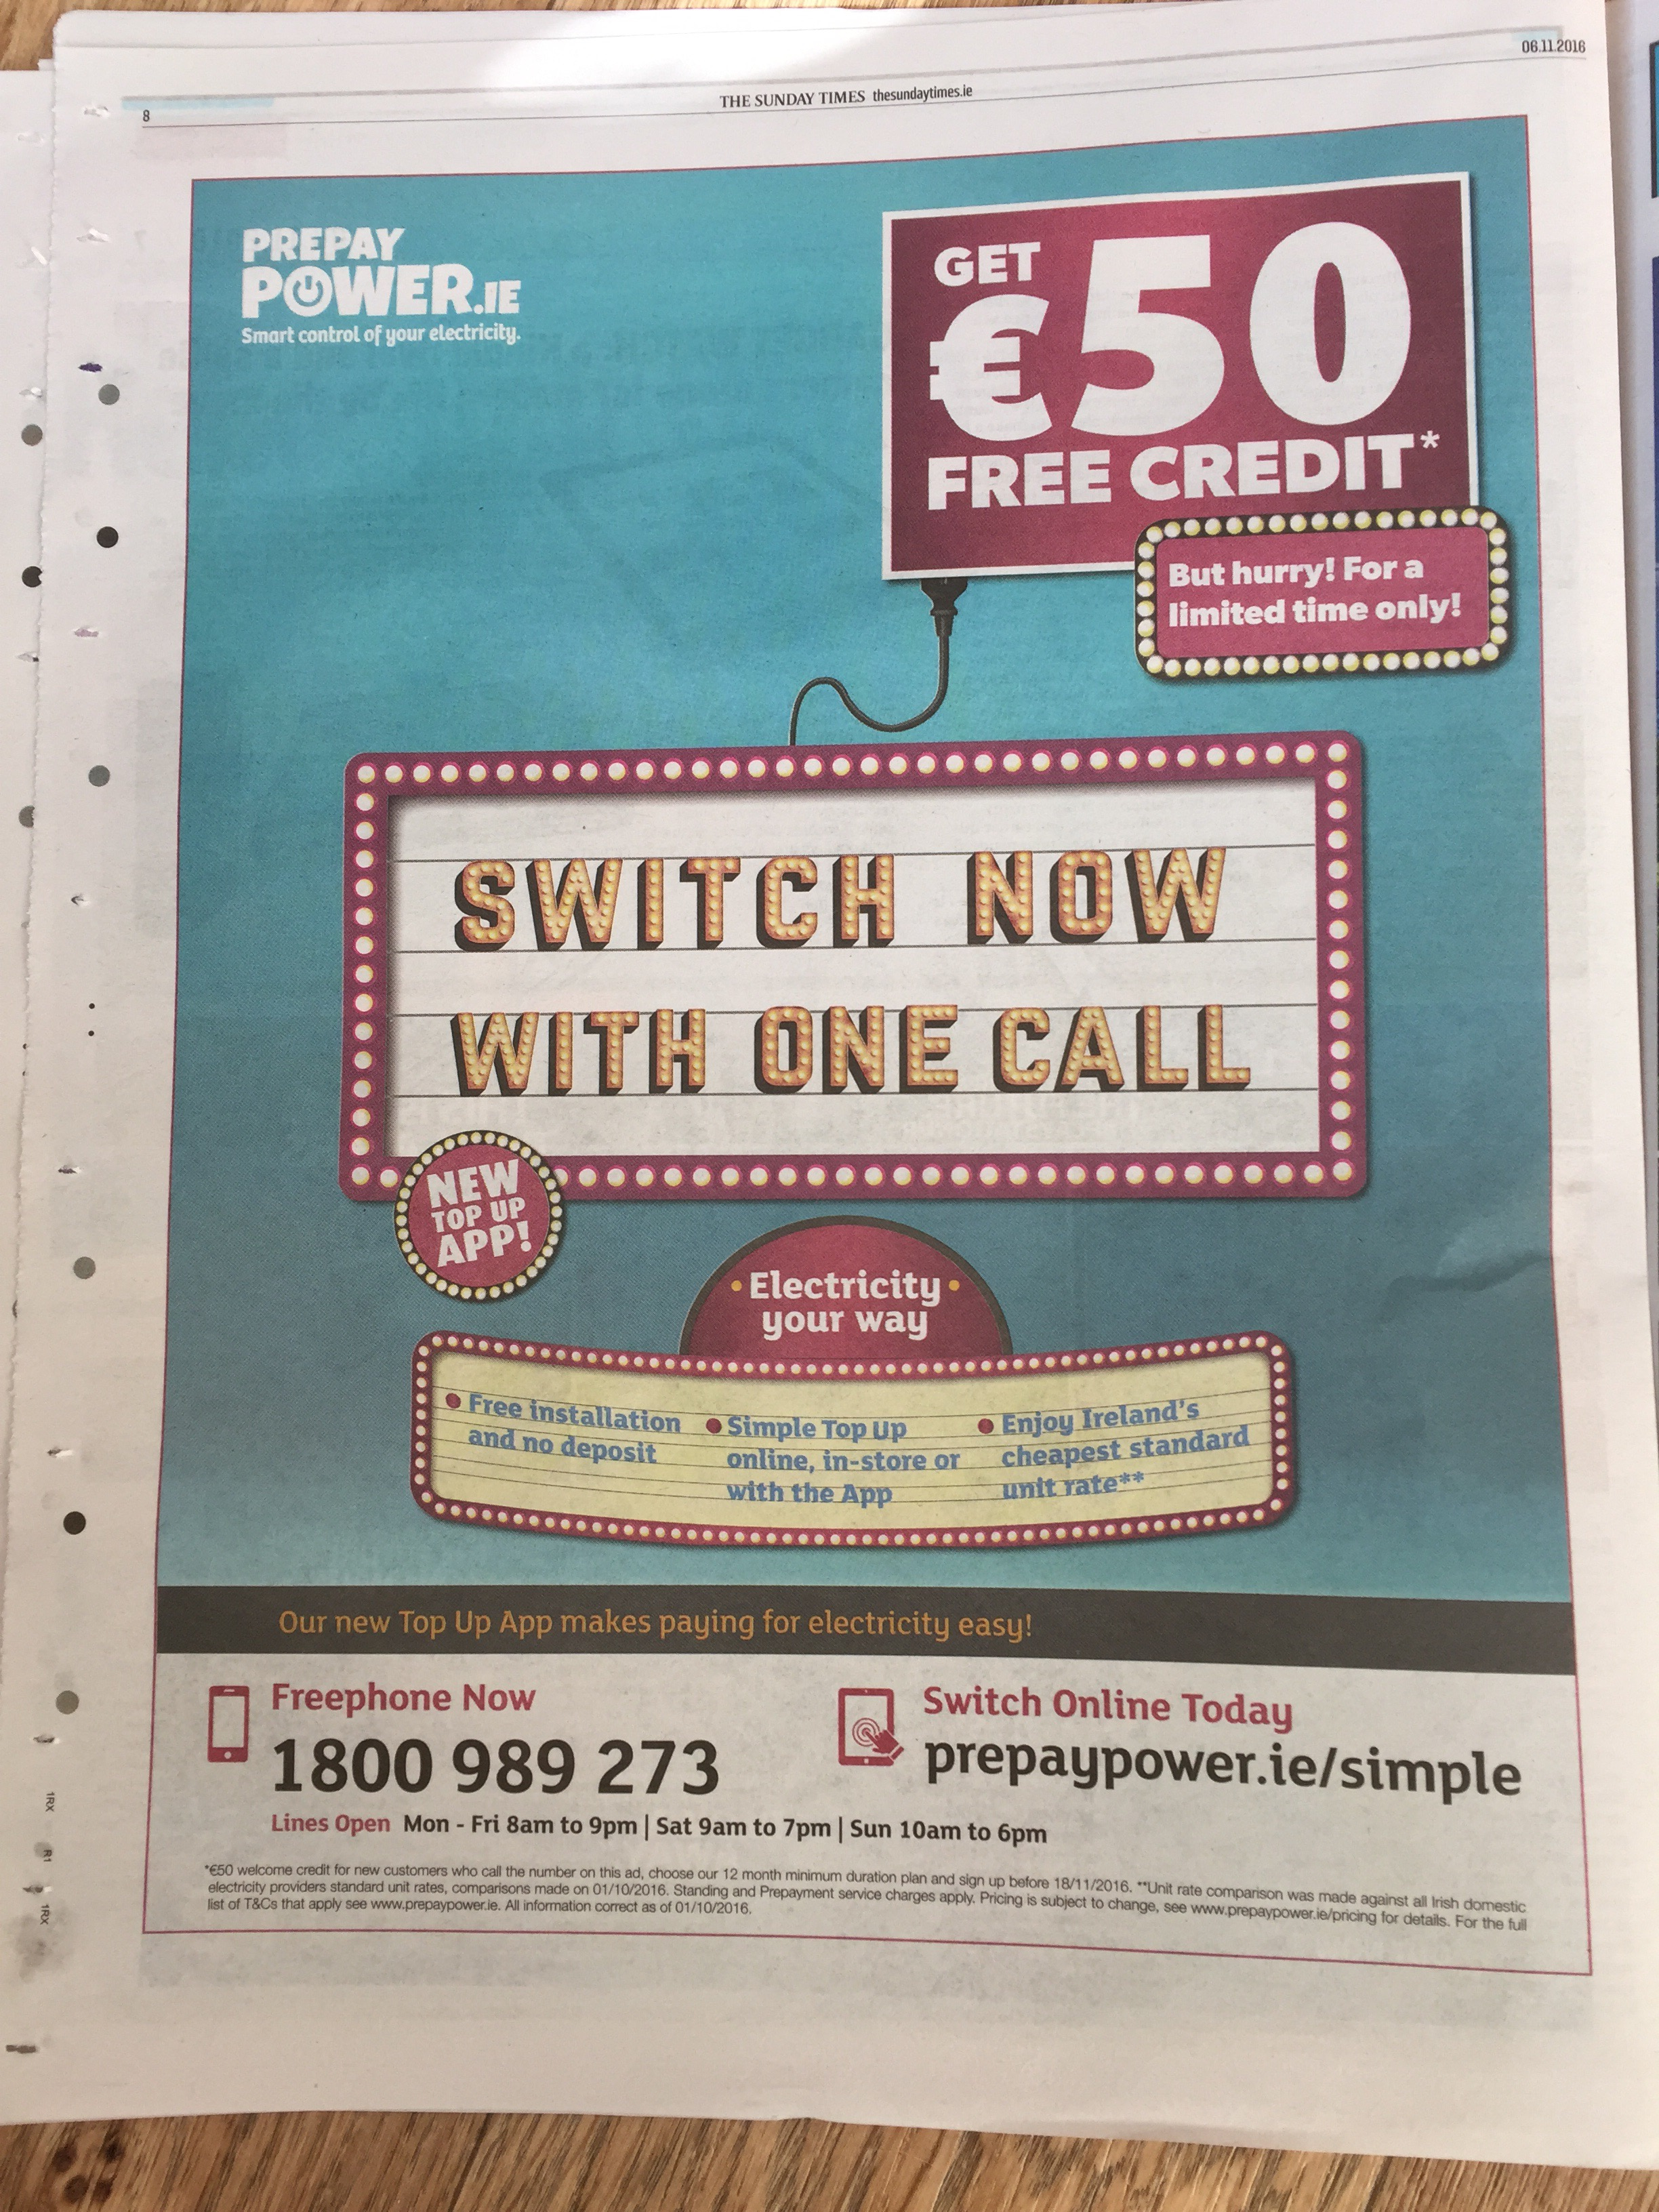 Pre pay power.ie – get €50 free credit